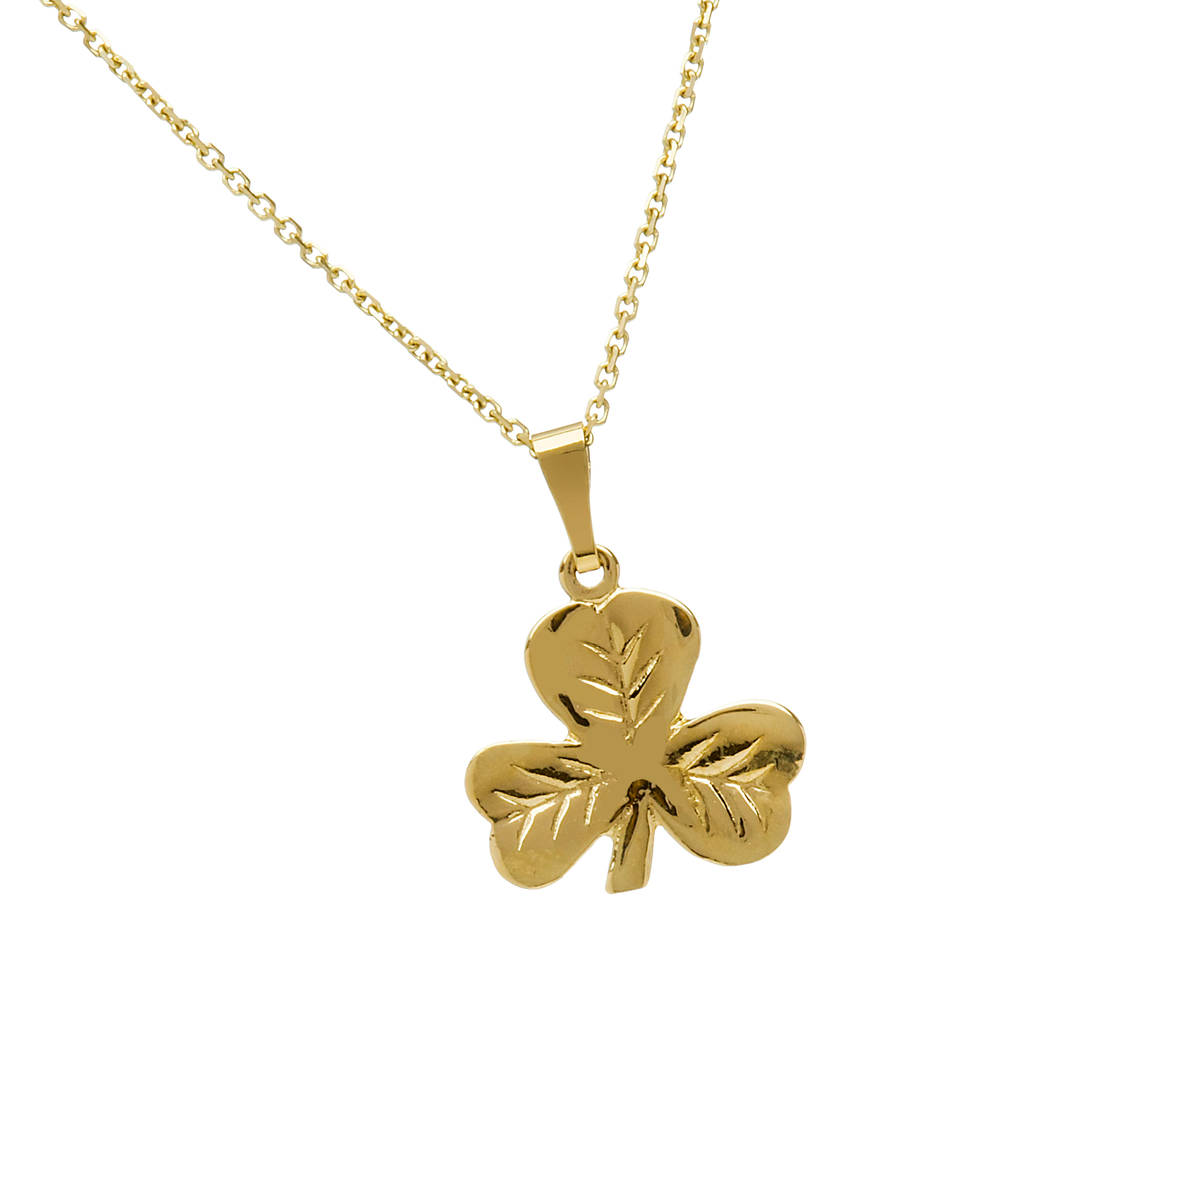 "10 carat yellow gold shamrock pendant on 18"" chain."